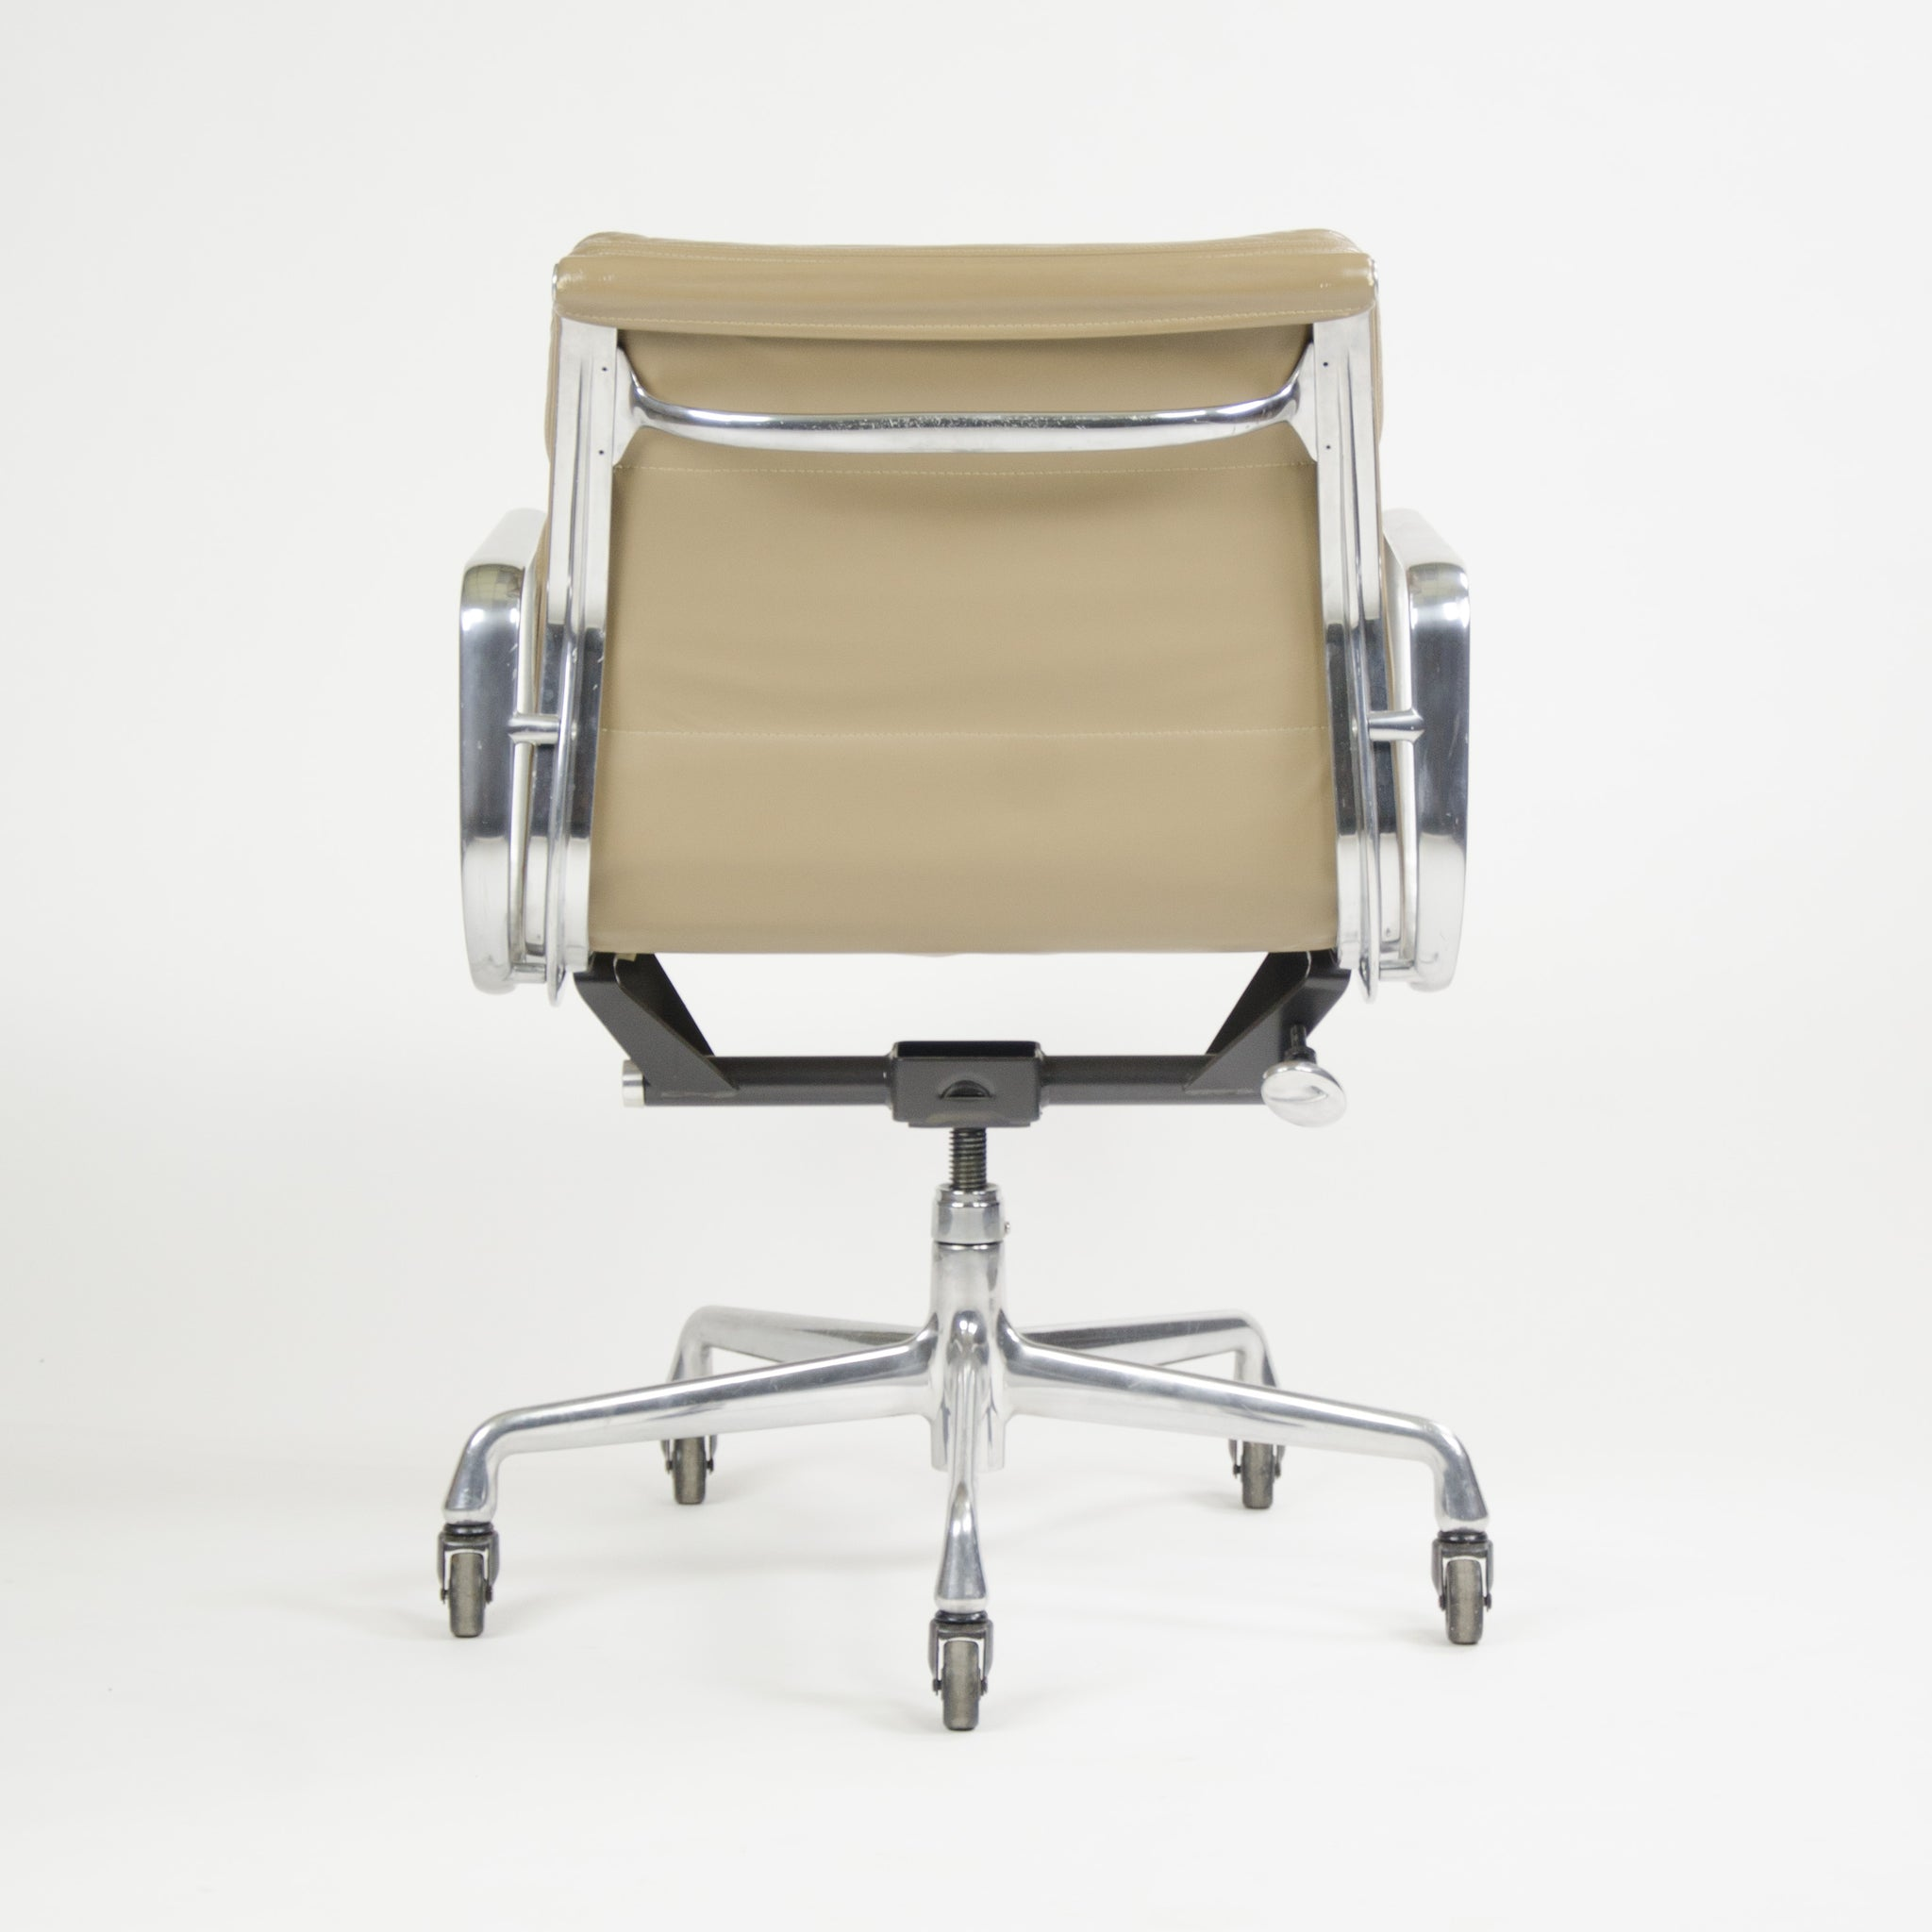 SOLD Herman Miller Eames Soft Pad Aluminum Group Chair Tan Leather 2000's 1x Avail